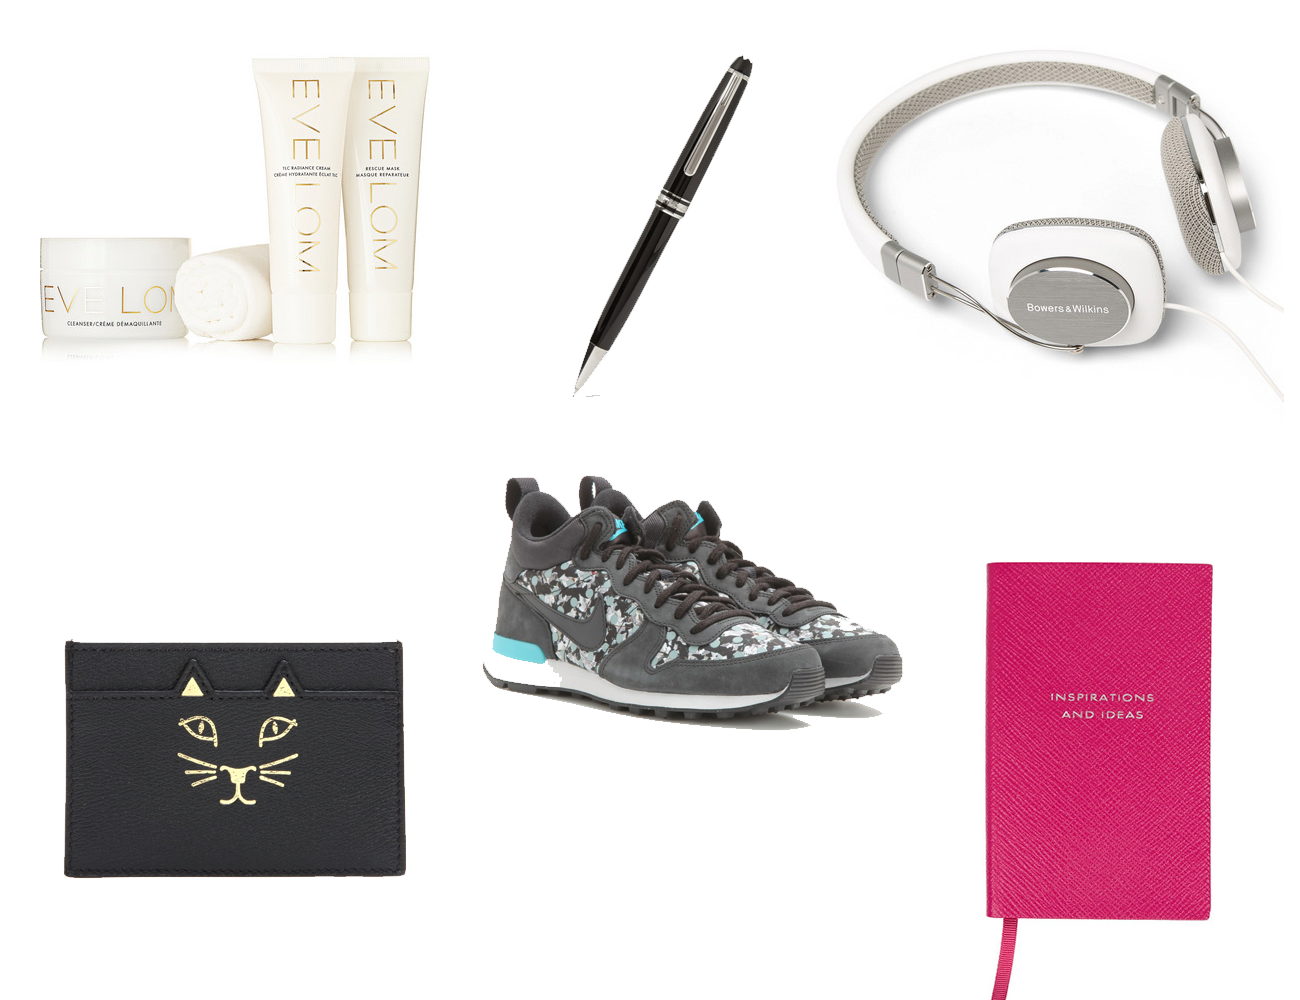 cgristmas, gifts, net à porter, nike, montblanc, beauty products, smythson, charlotte olympia